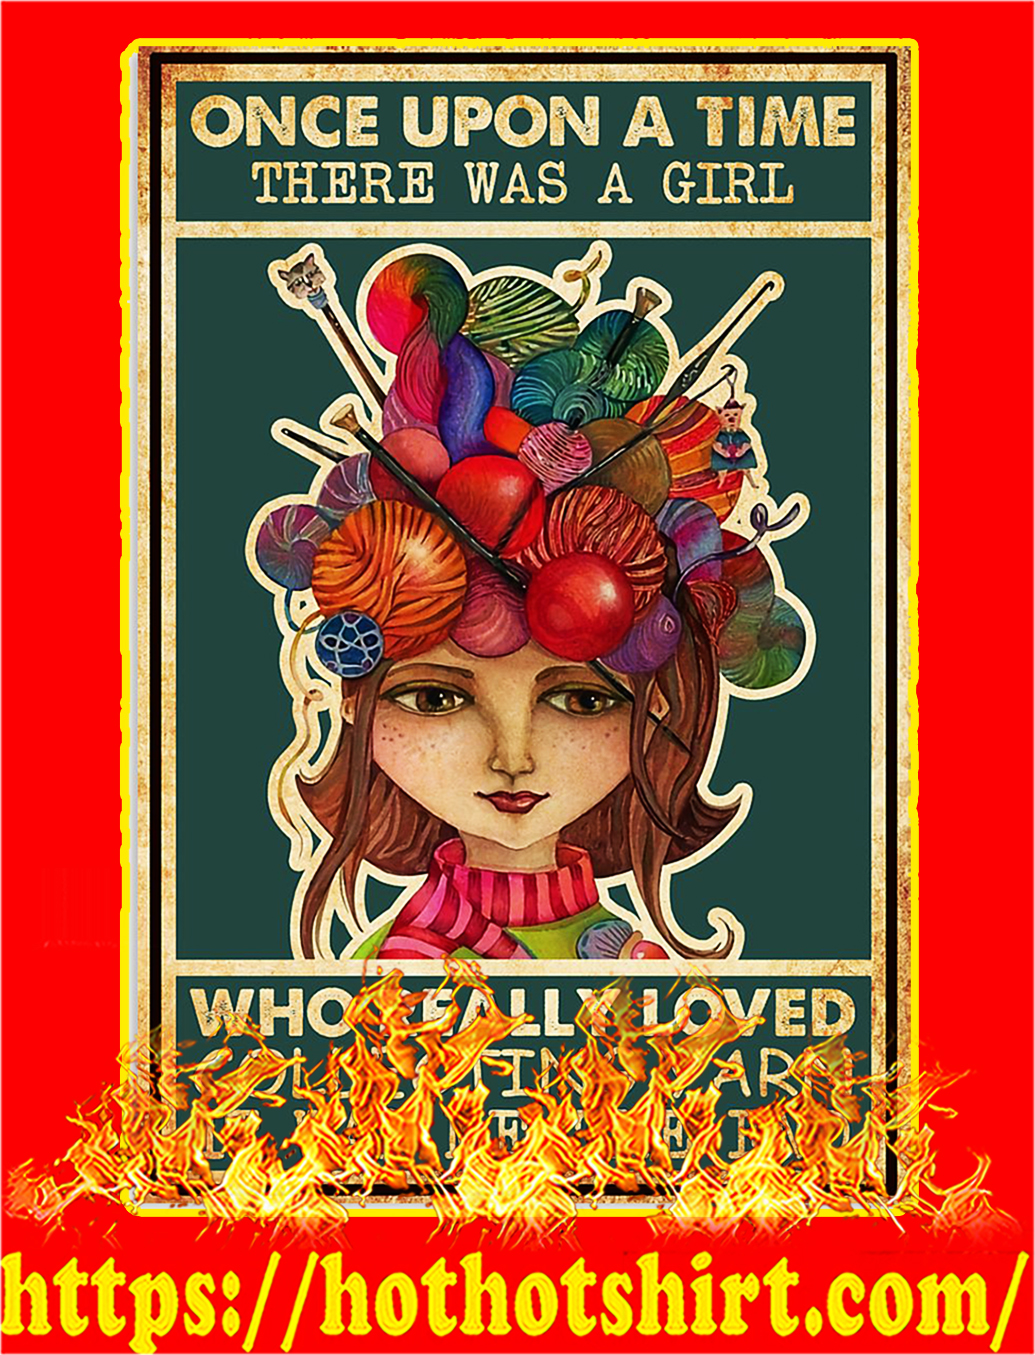 Once upon a time there was a girl who really loved collecting yarn poster - A2